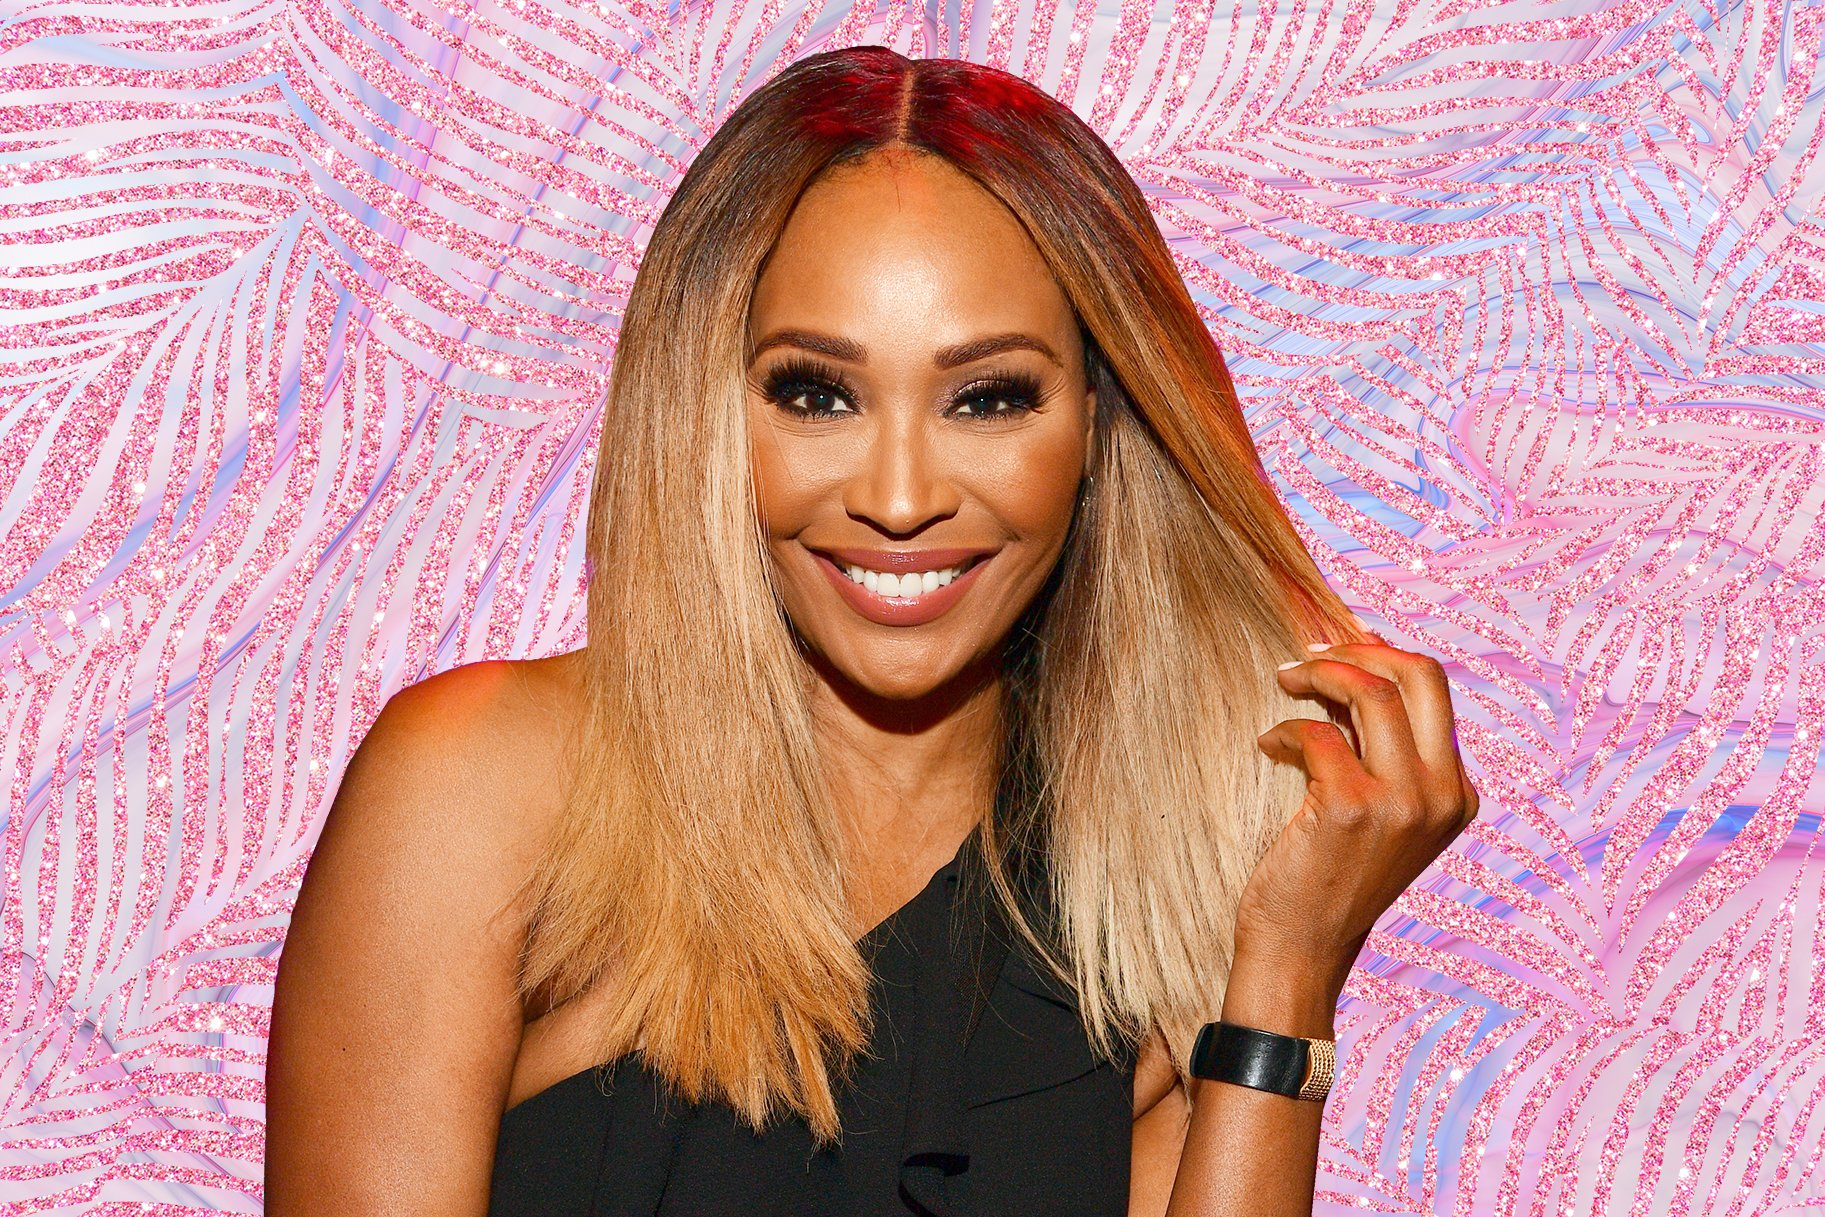 cynthia-bailey-asks-her-fans-to-spread-love-not-germs